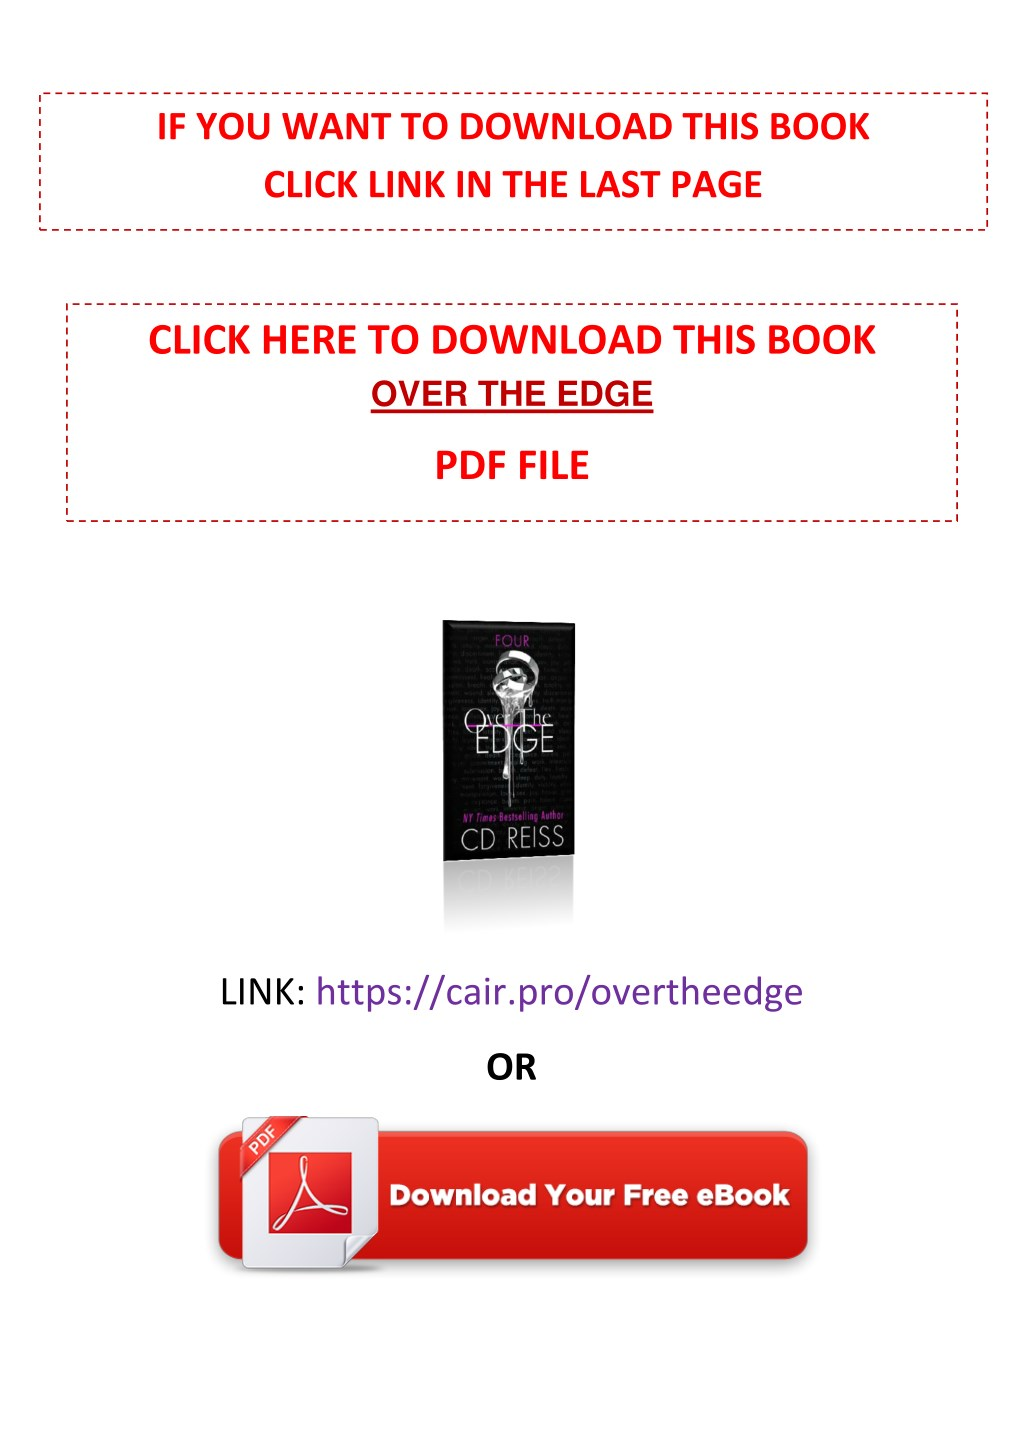 PPT - [PDF] Free Download Over the Edge By CD Reiss